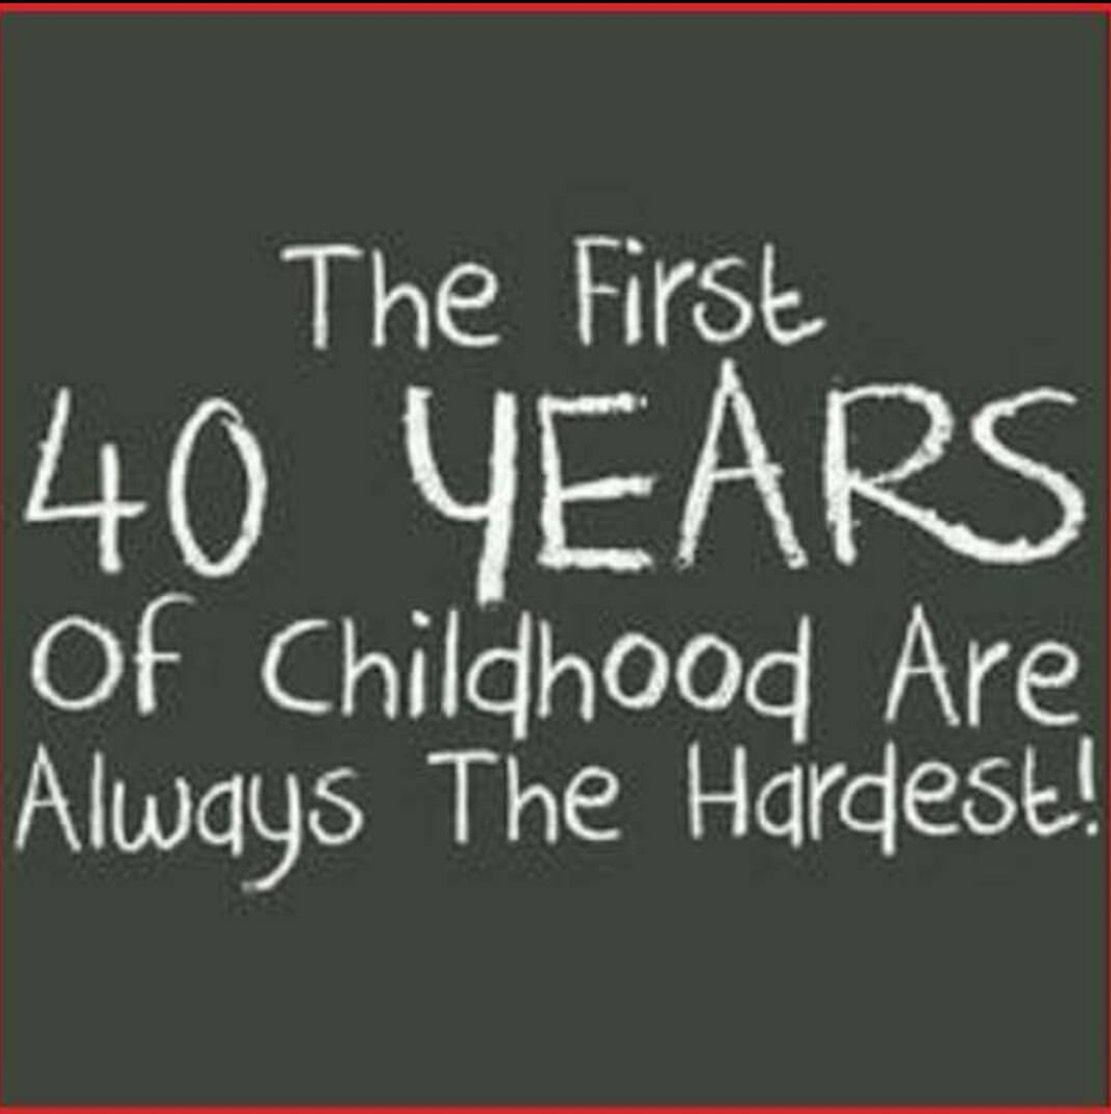 Turning 40 Quotes Pindavid Jackson On Humor  Pinterest  Humor